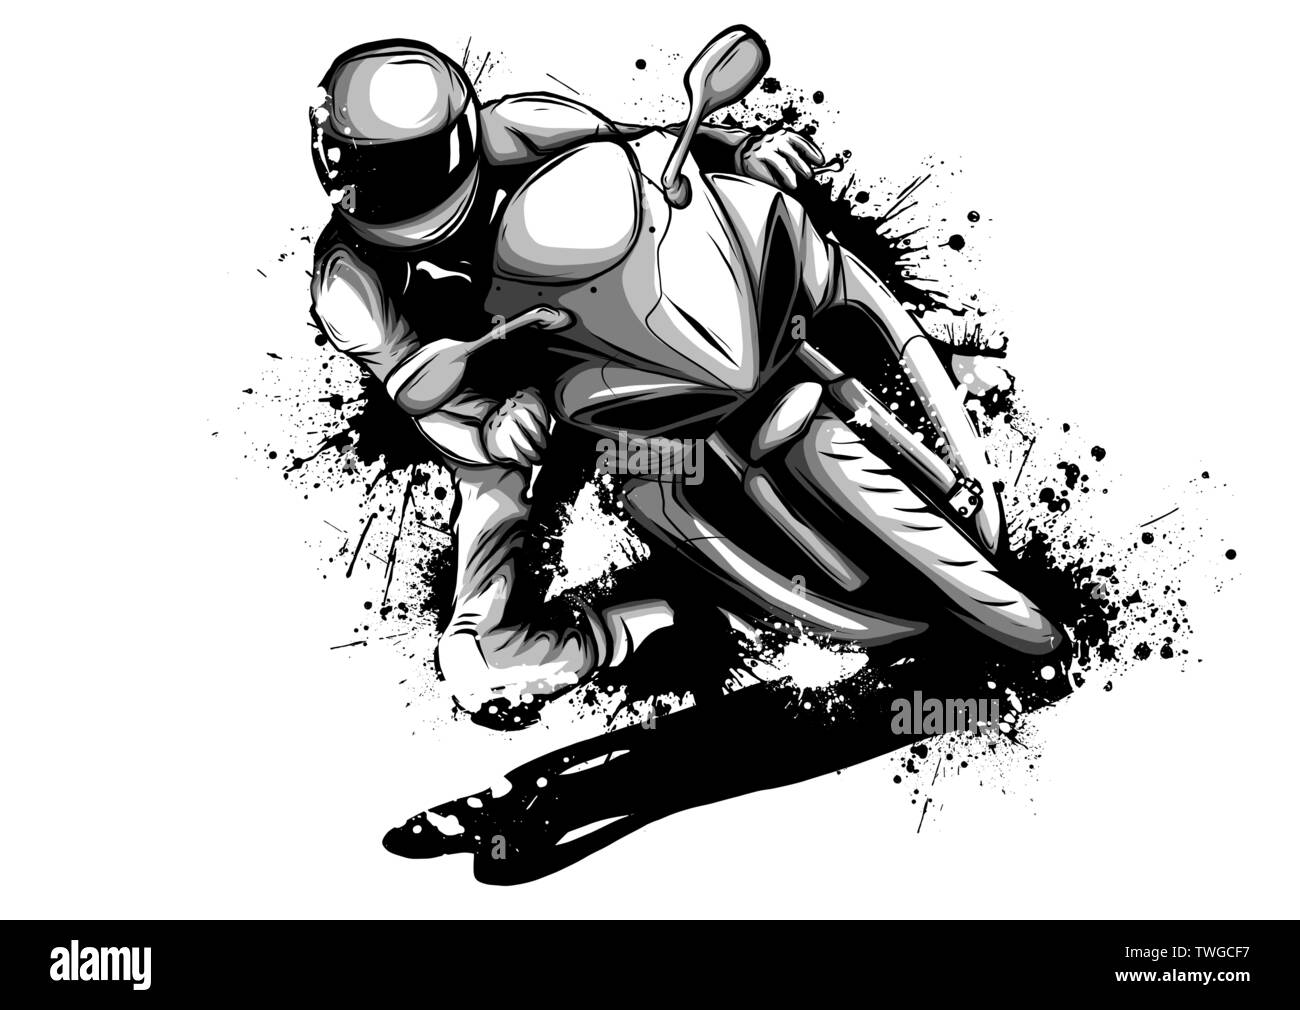 motorbike logo high resolution stock photography and images alamy https www alamy com racer riding motorbike logo isolated on background of night sky side view of man in helmet motorbilker on scooter vector illustration male on bike image256672619 html